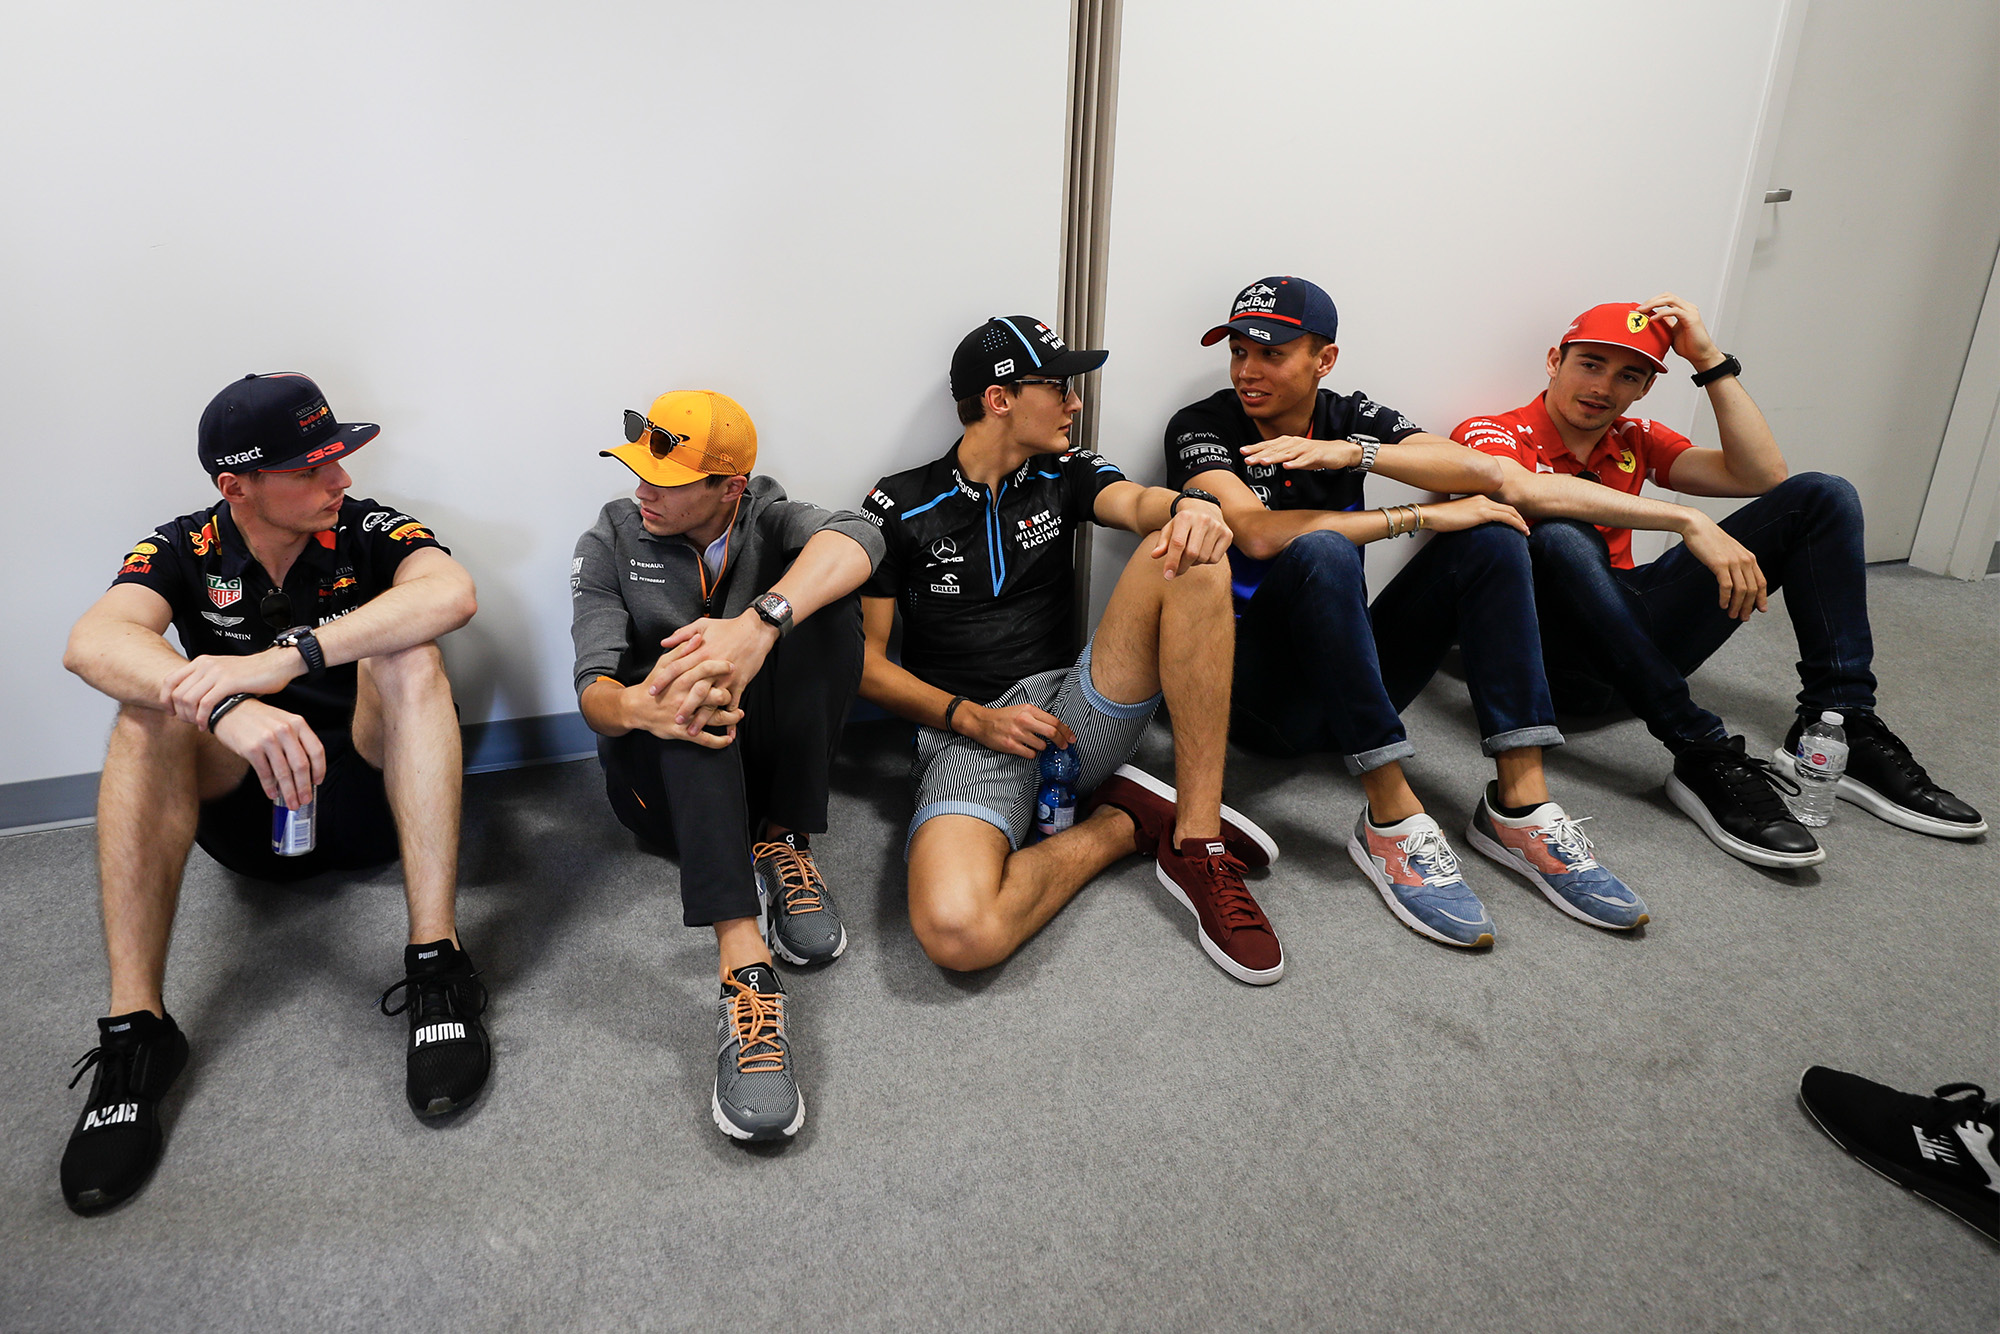 Max Verstappen, Lando Norris, George Russell, Alex Albon and Charles Leclerc